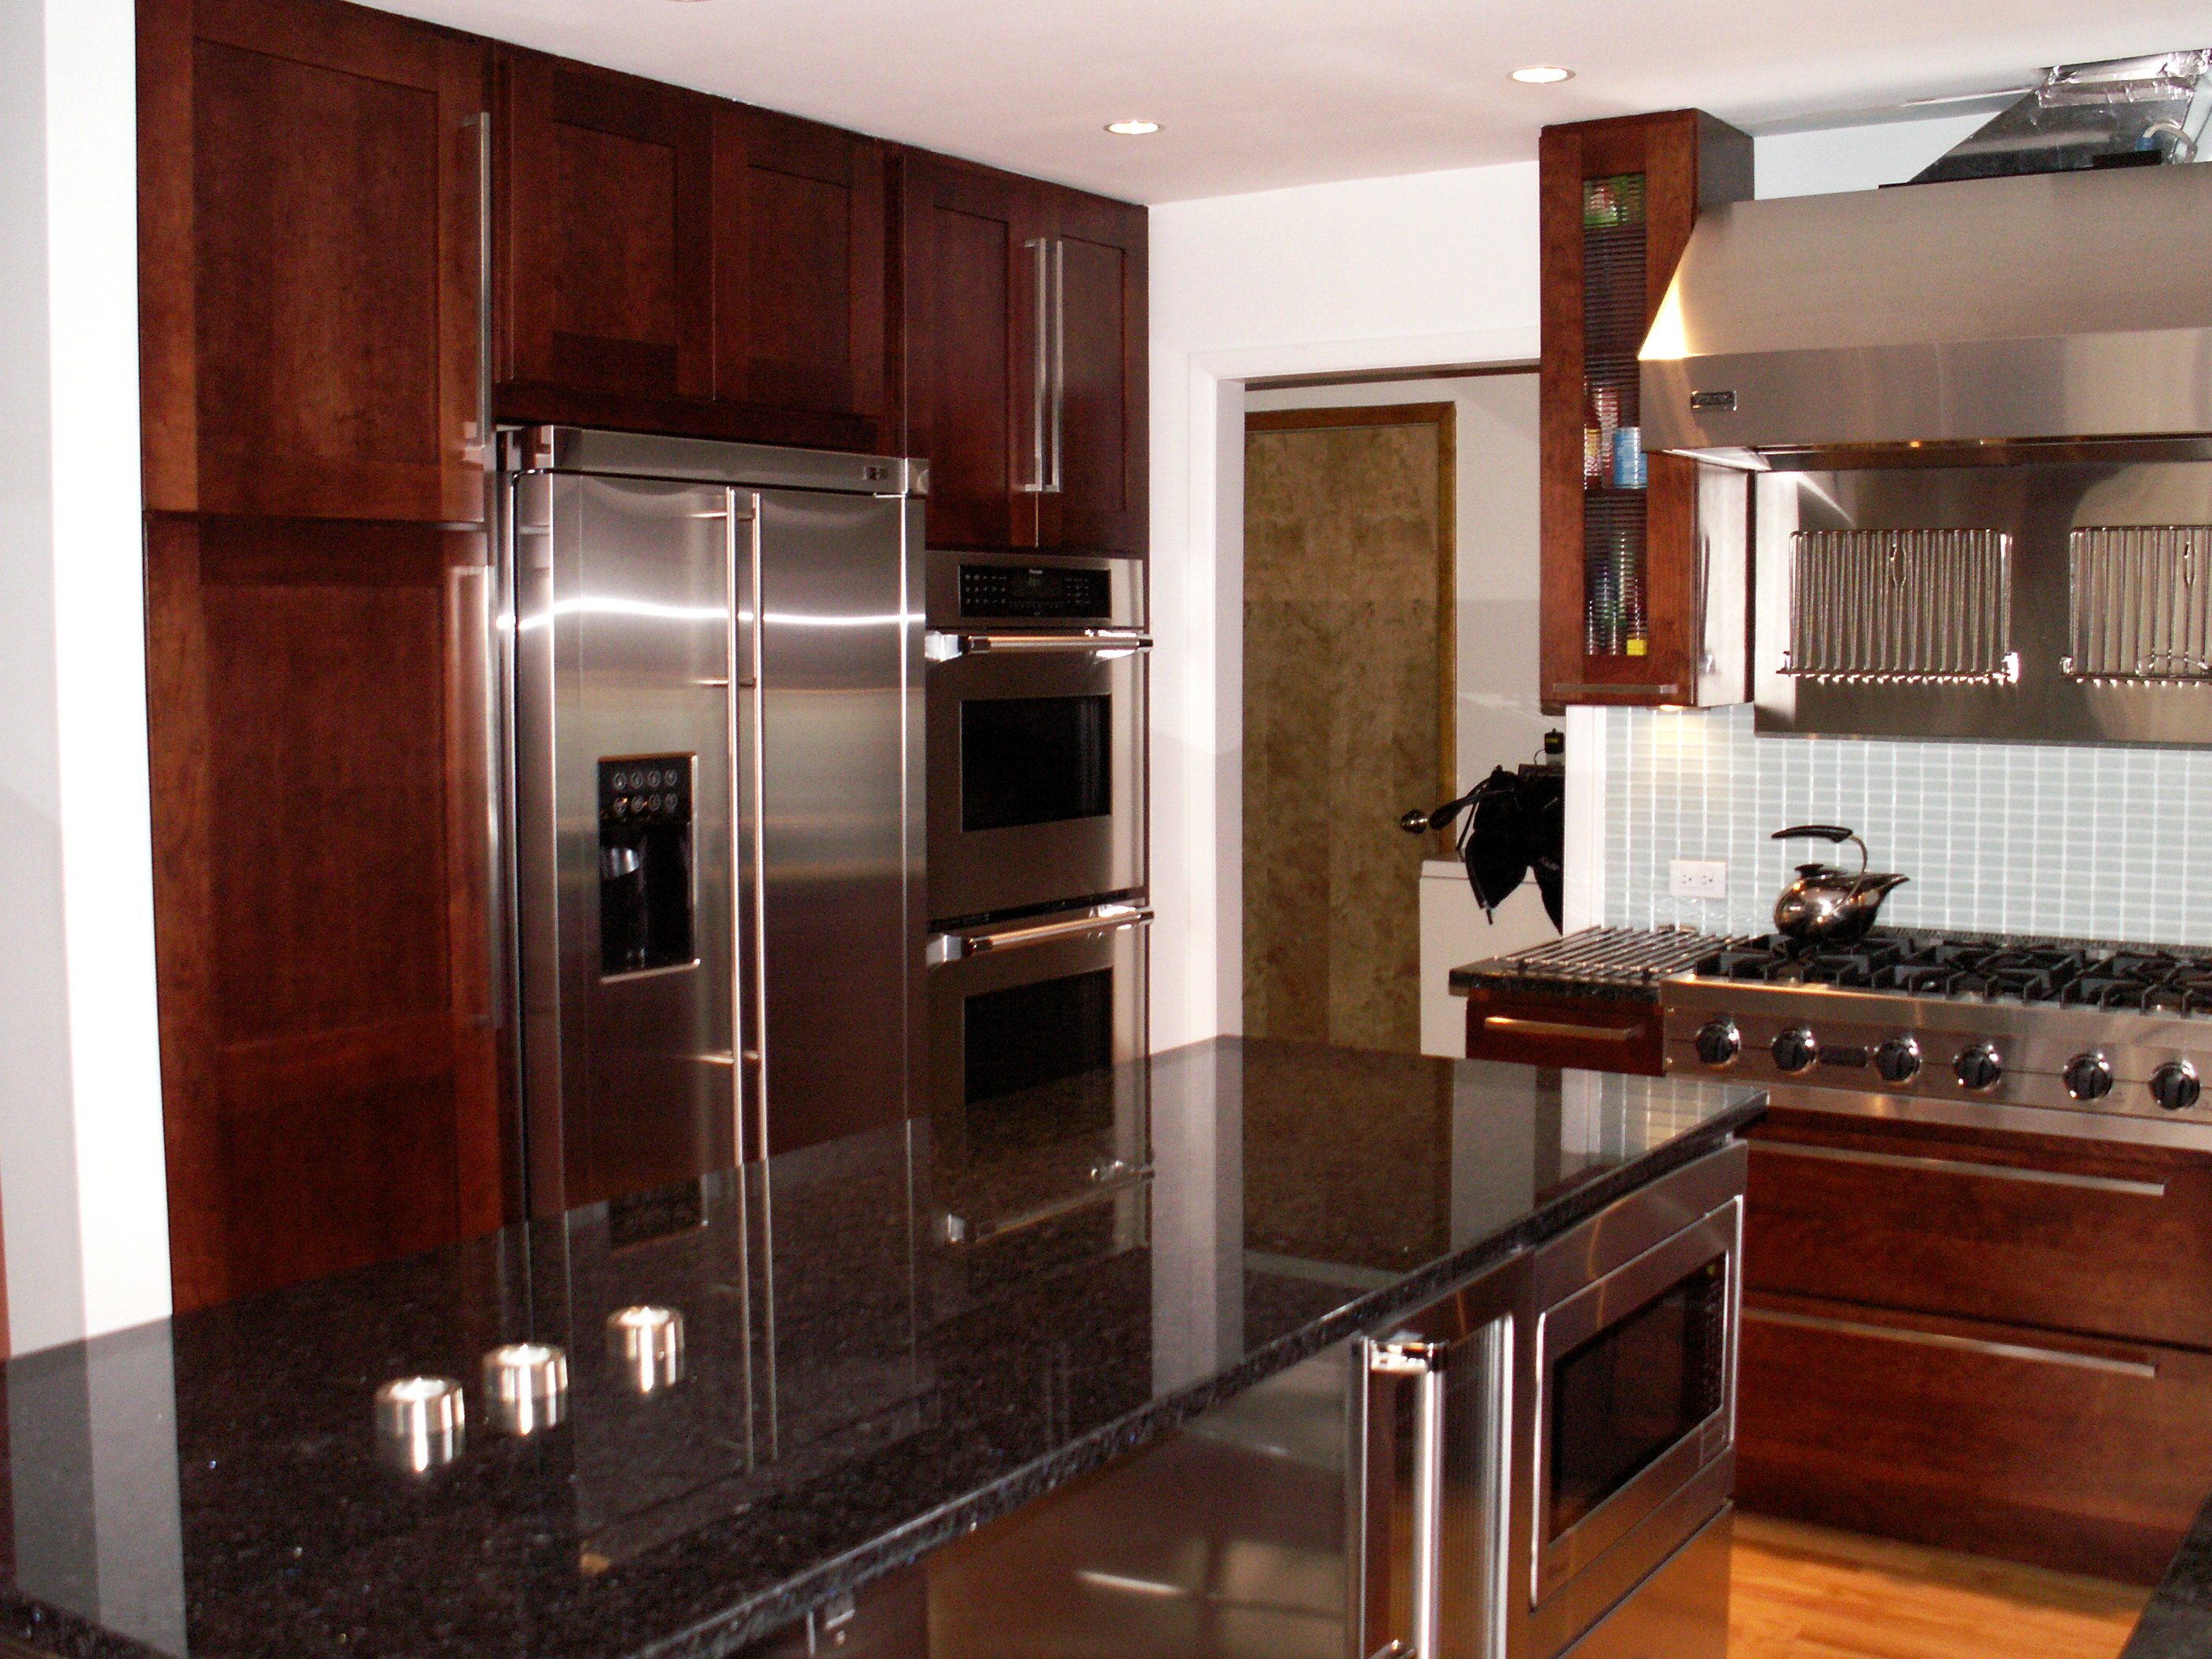 Kitchen Design Ct Kitchen Design Ct Home Remodel Amp Design Northeast Unusual Design Kitchen